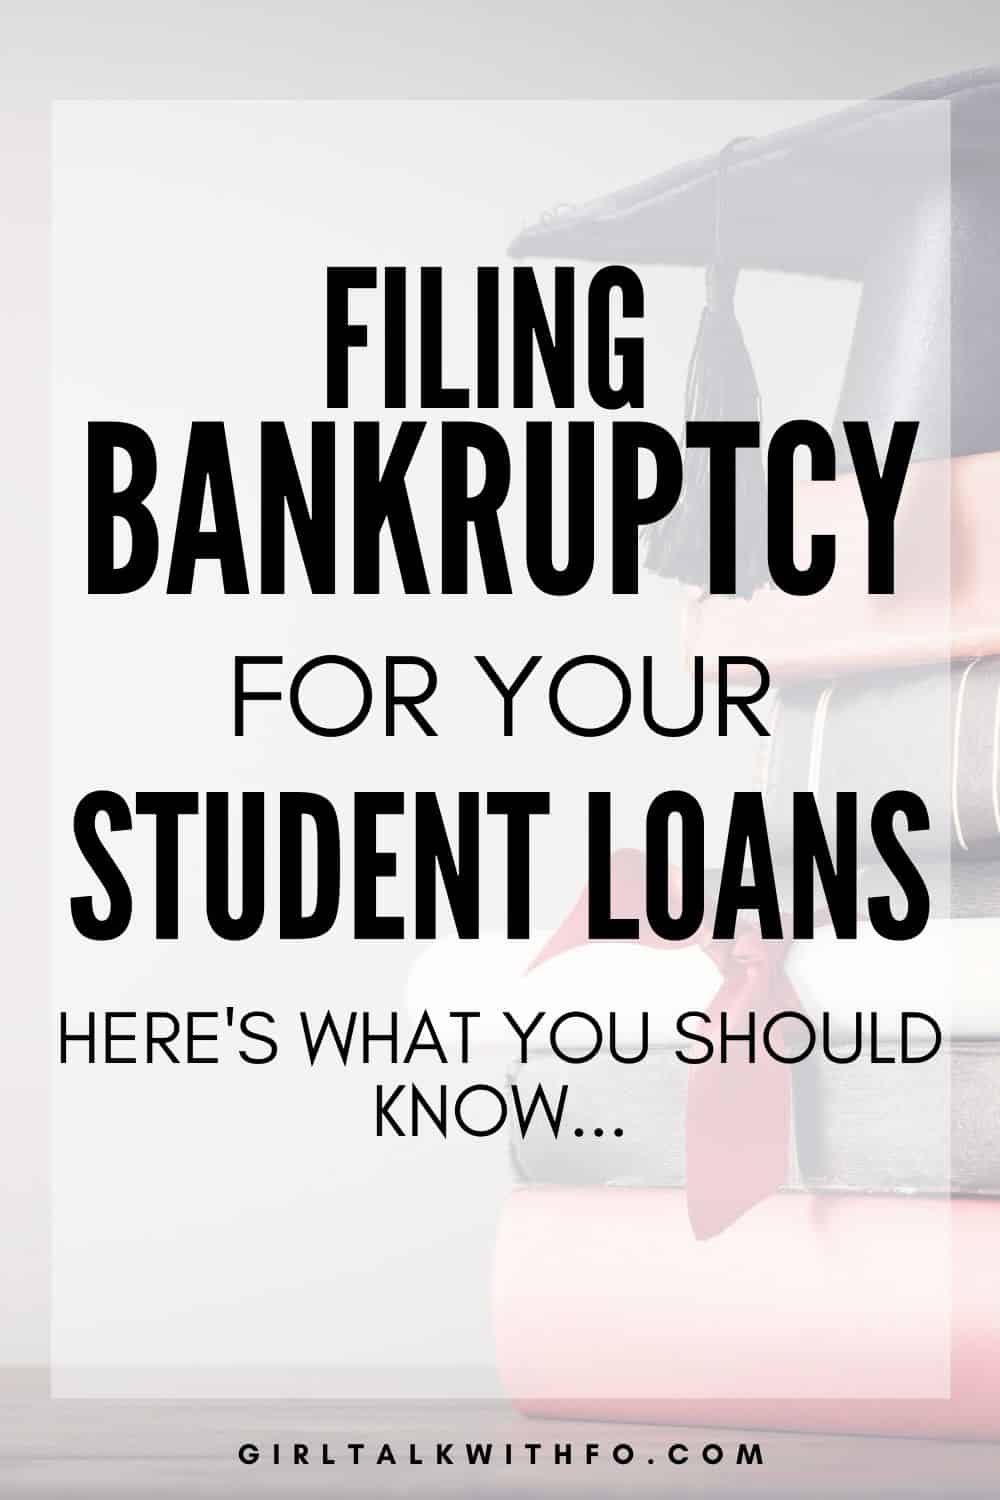 Can you File Bankruptcy for Student Loans in 2021?